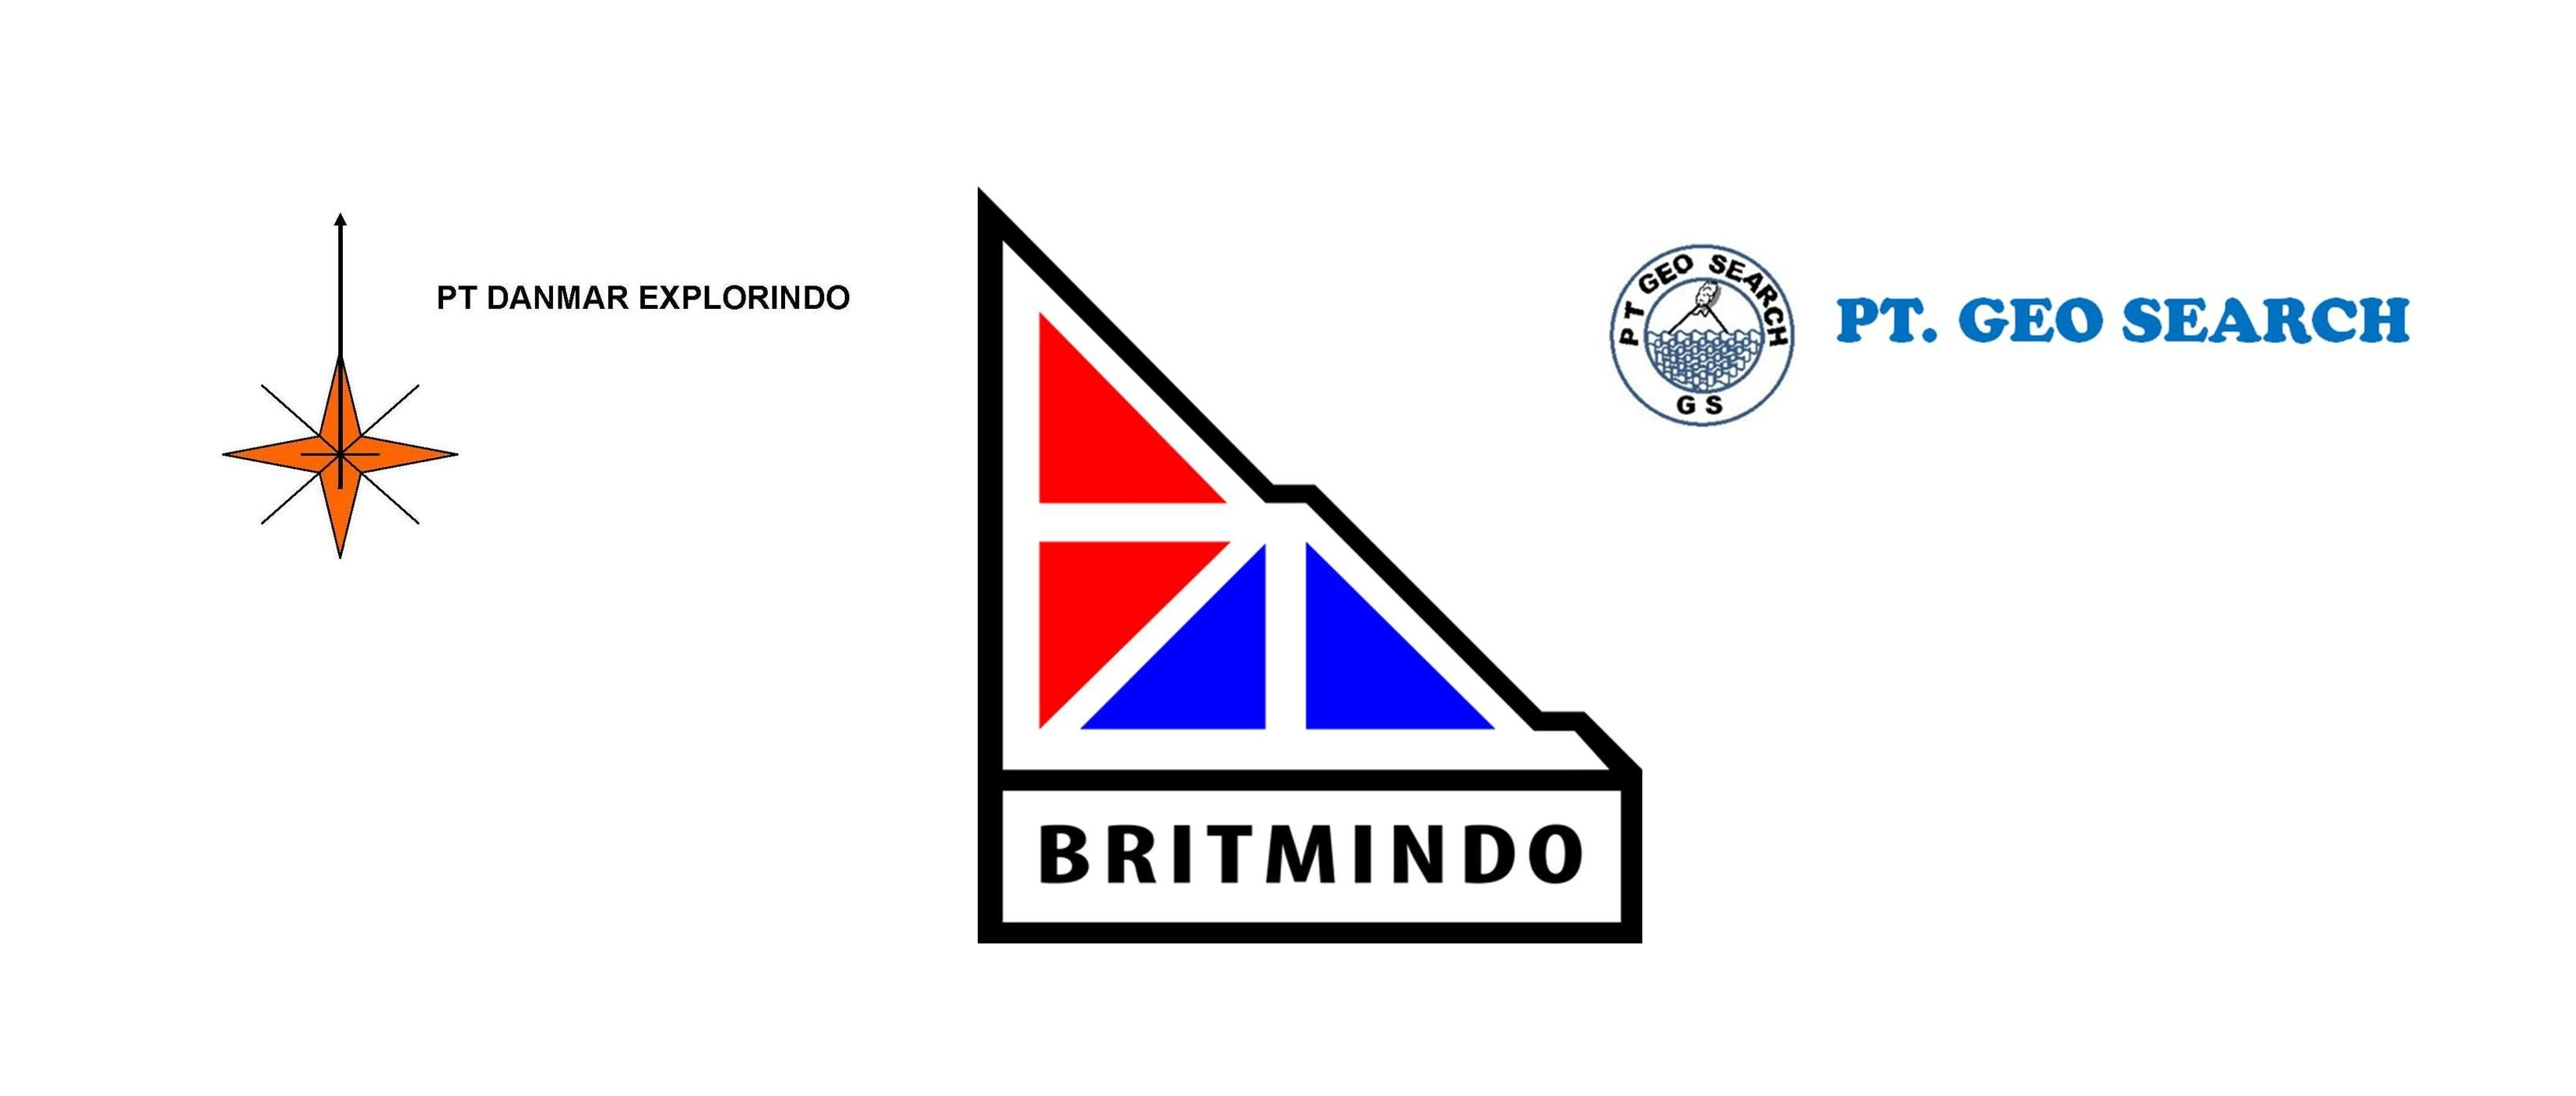 Britmindo Group enters into association agreement with PT Danmar Explorindo and PT Geo Search